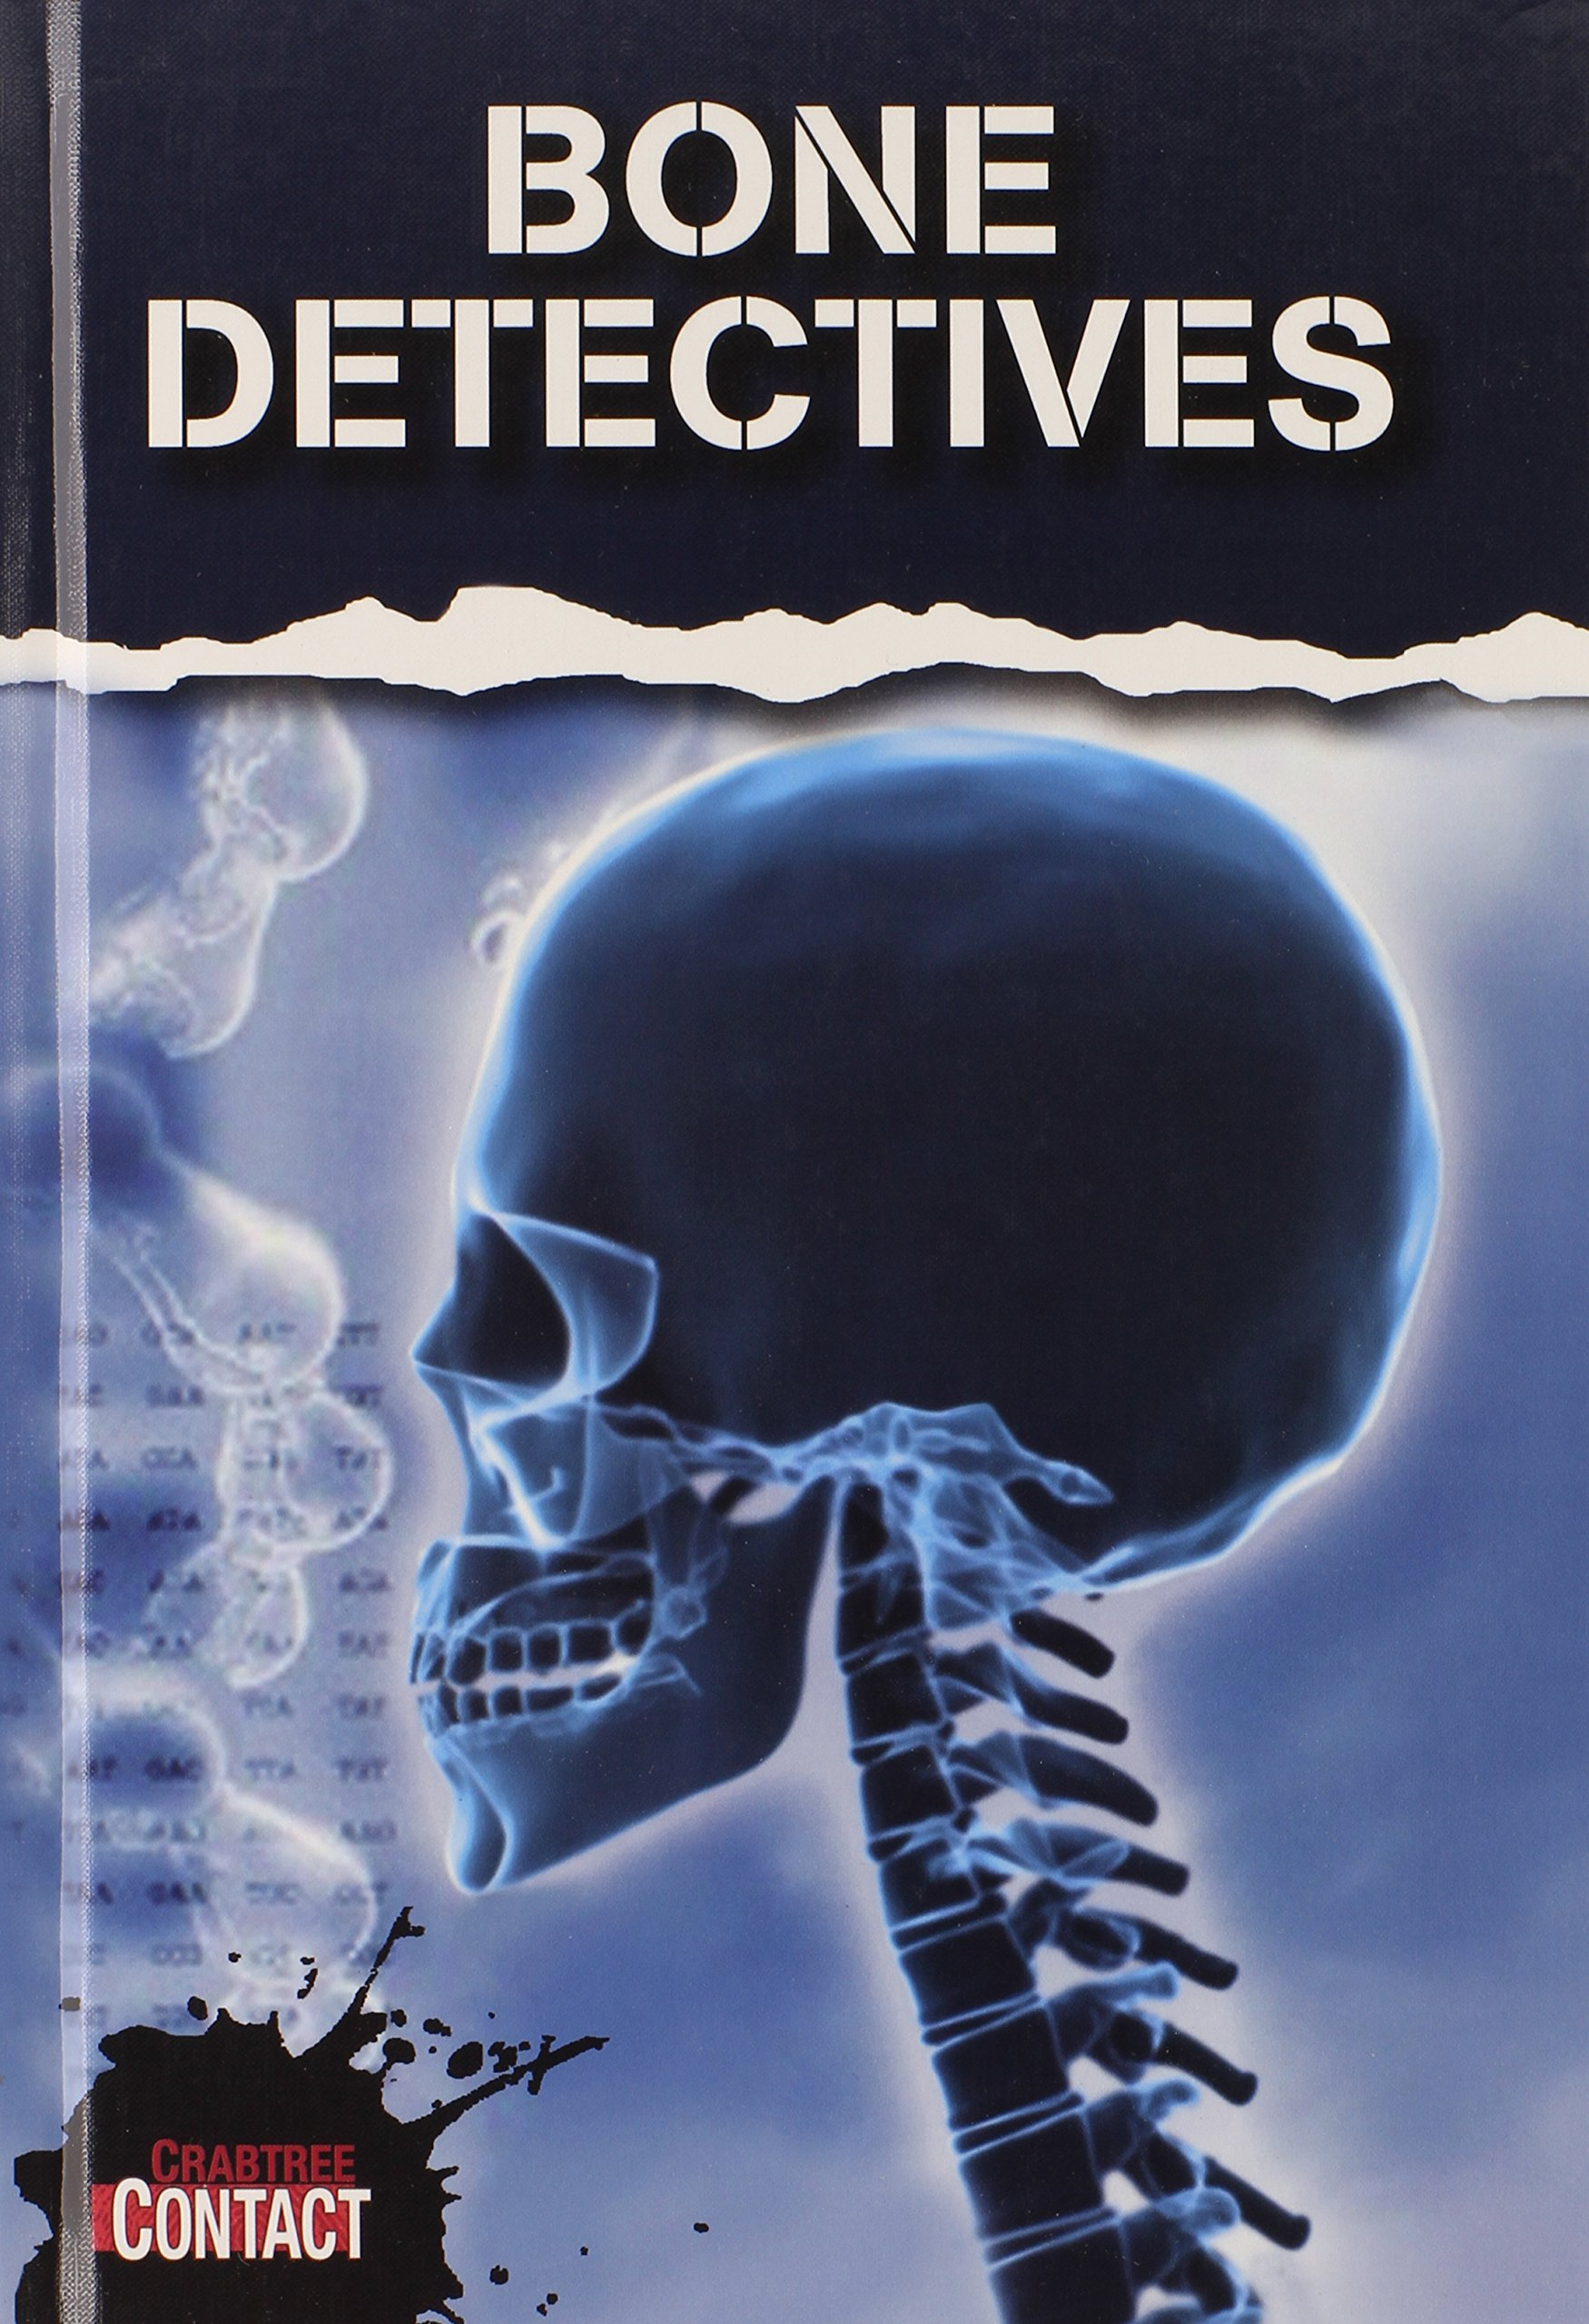 Bone Dectective (Crabtree Contact)